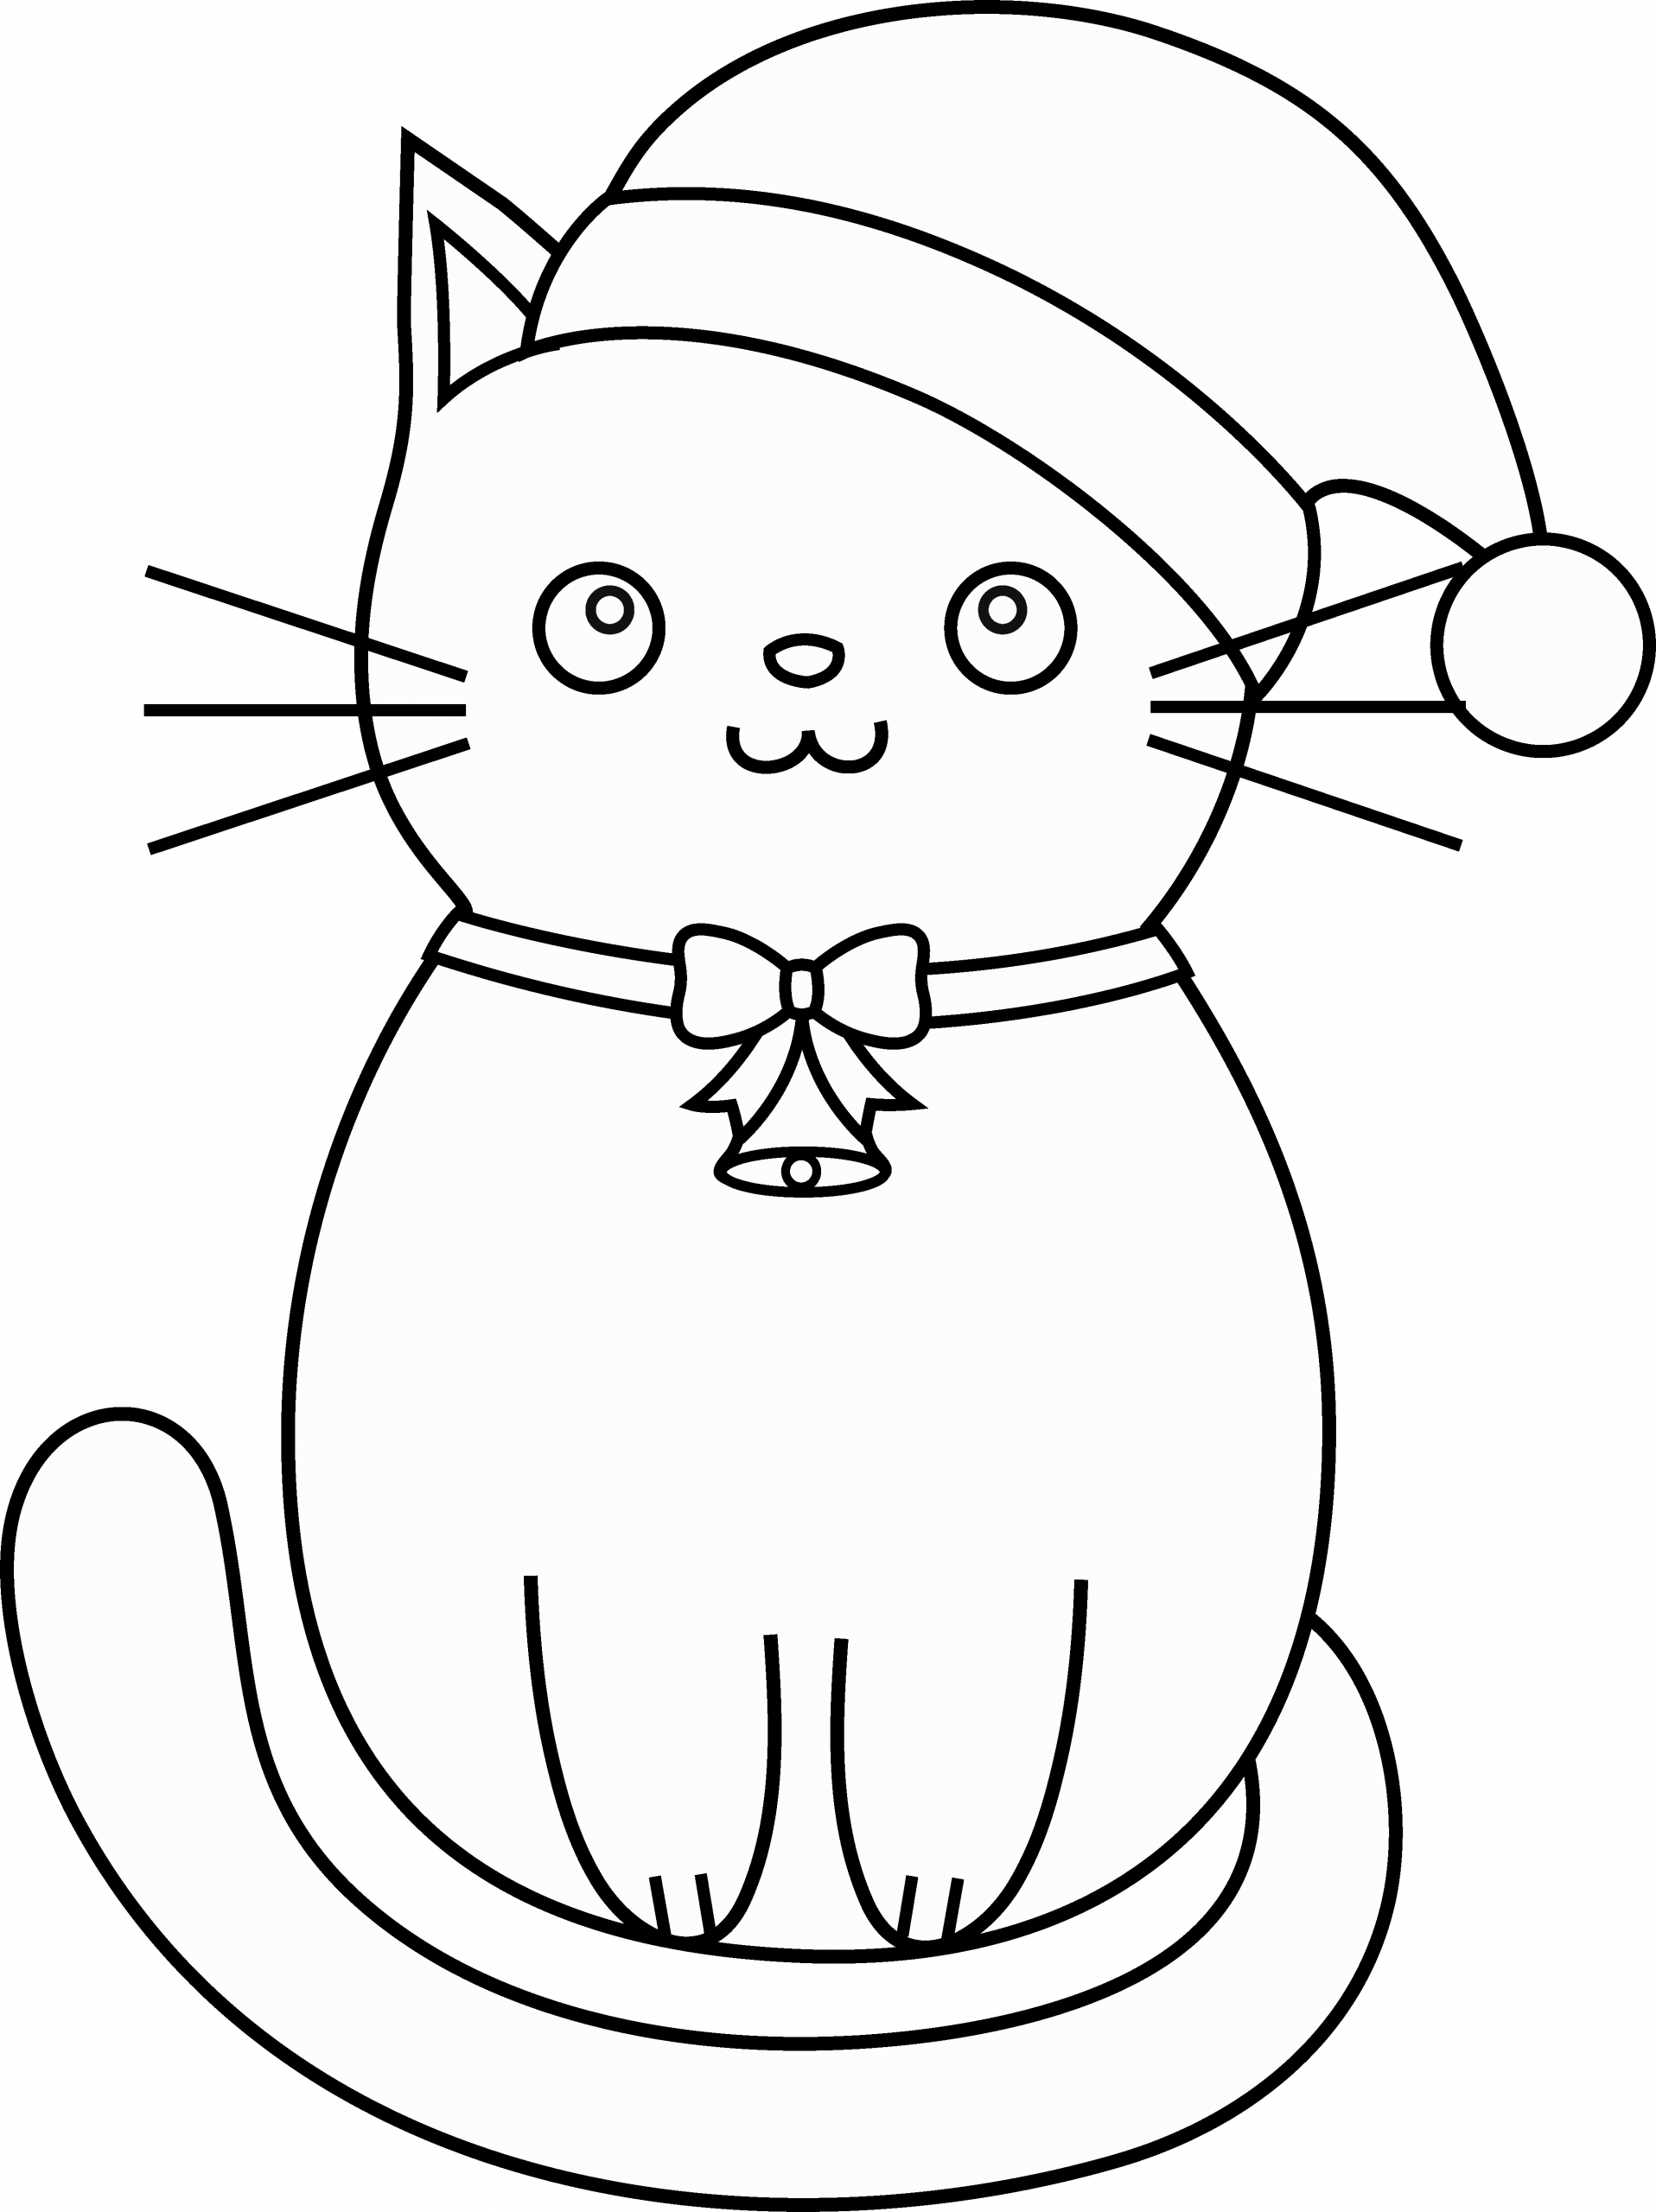 Christmas Kitty Coloring Pages Fresh Christmas Cat Line Art Free Clip Art Kitty Coloring Cat Coloring Page Christmas Coloring Pages